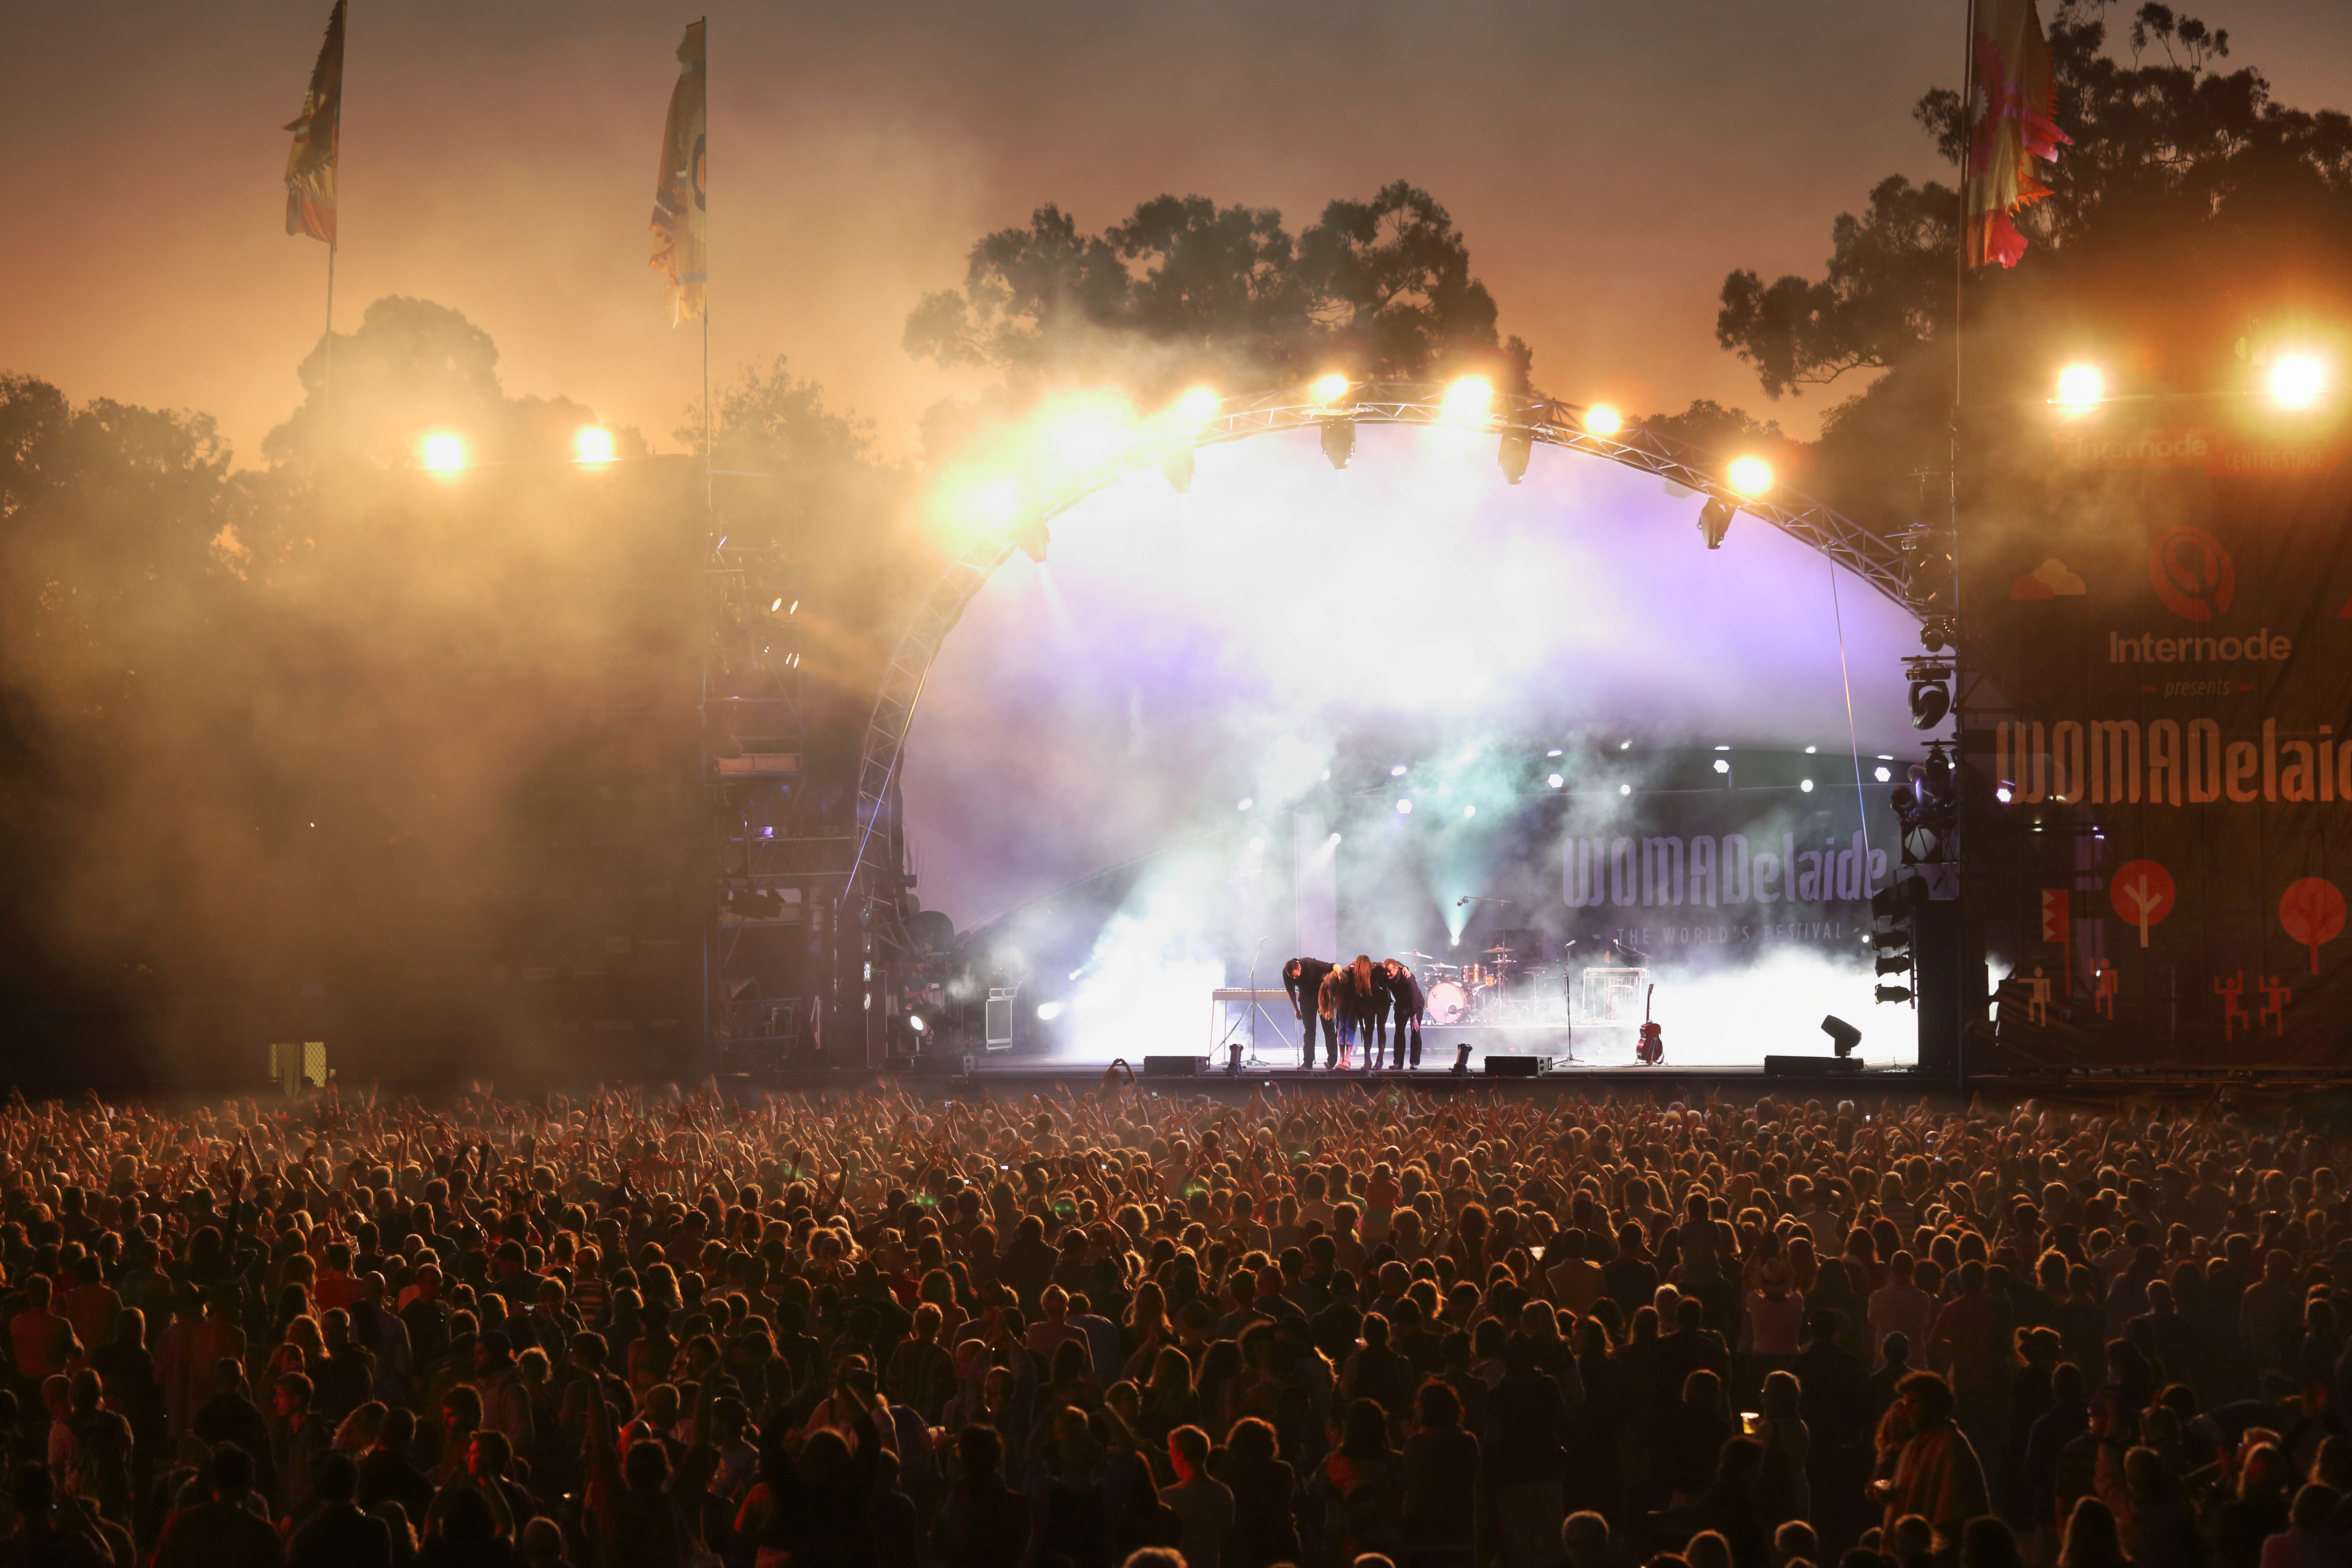 WOMADELAIDE FESTIVAL CELEBRATES 30 YEARS WITH A RETURN TO BOTANIC PARK